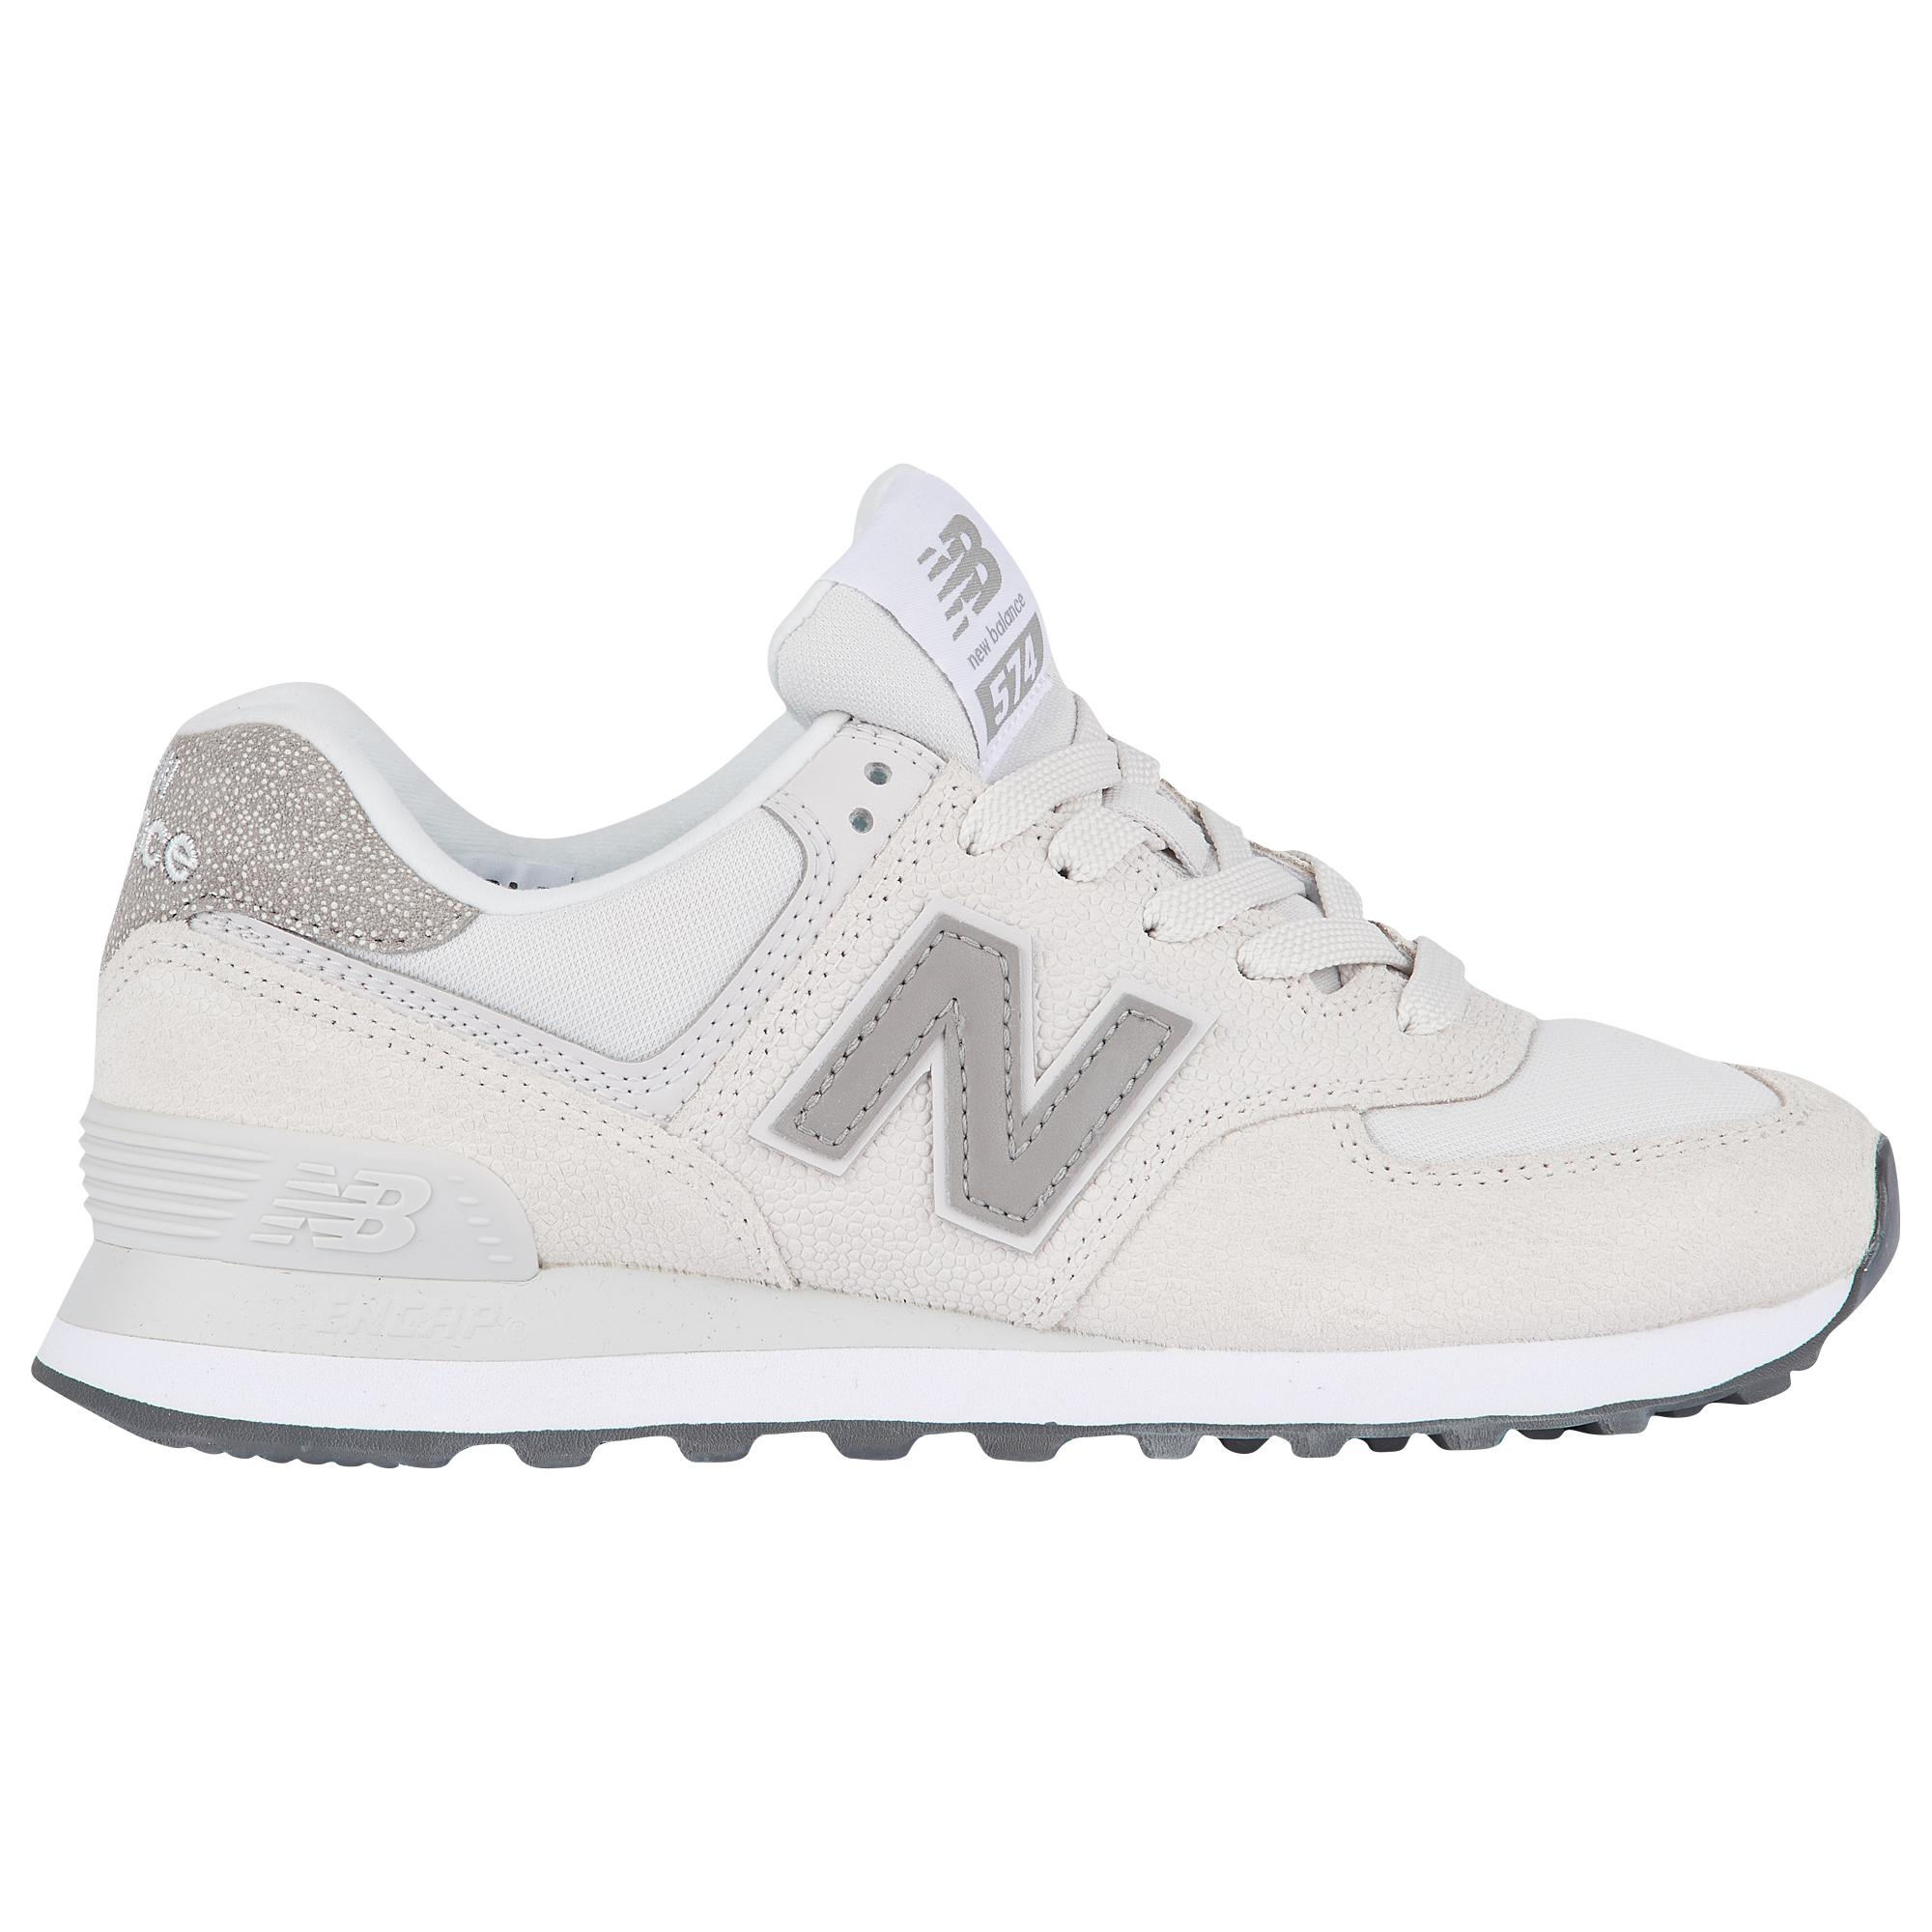 on sale 23bfe 8fe97 New Balance 574 Classic in White - Lyst